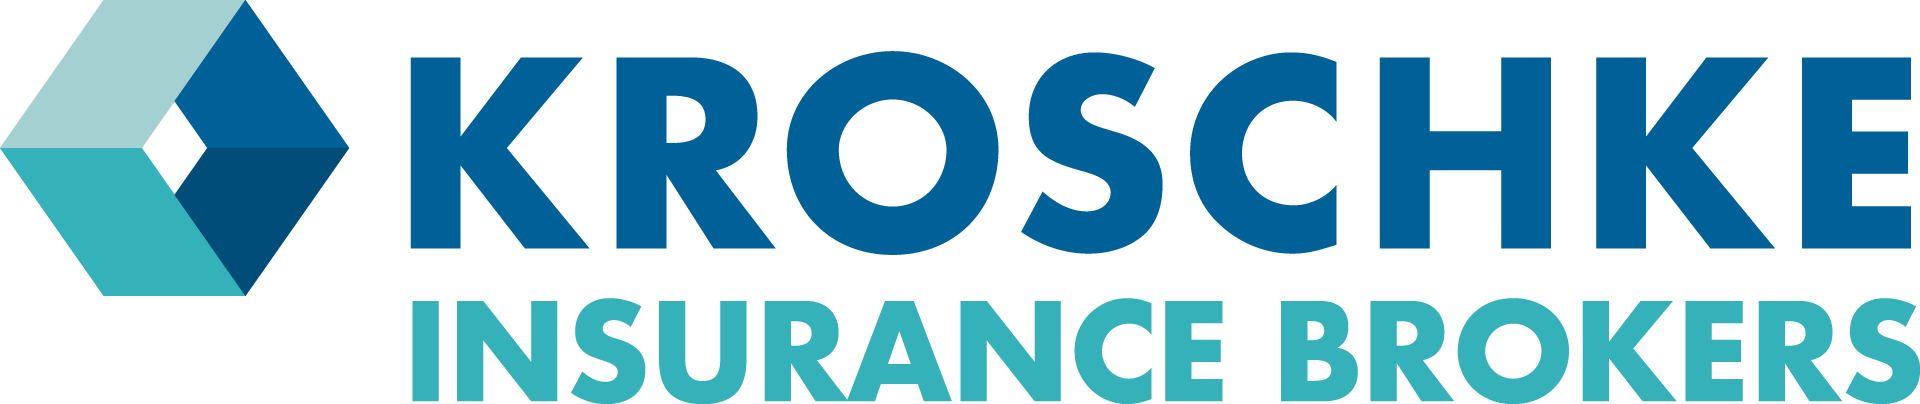 Kroschke Insurance Brokers